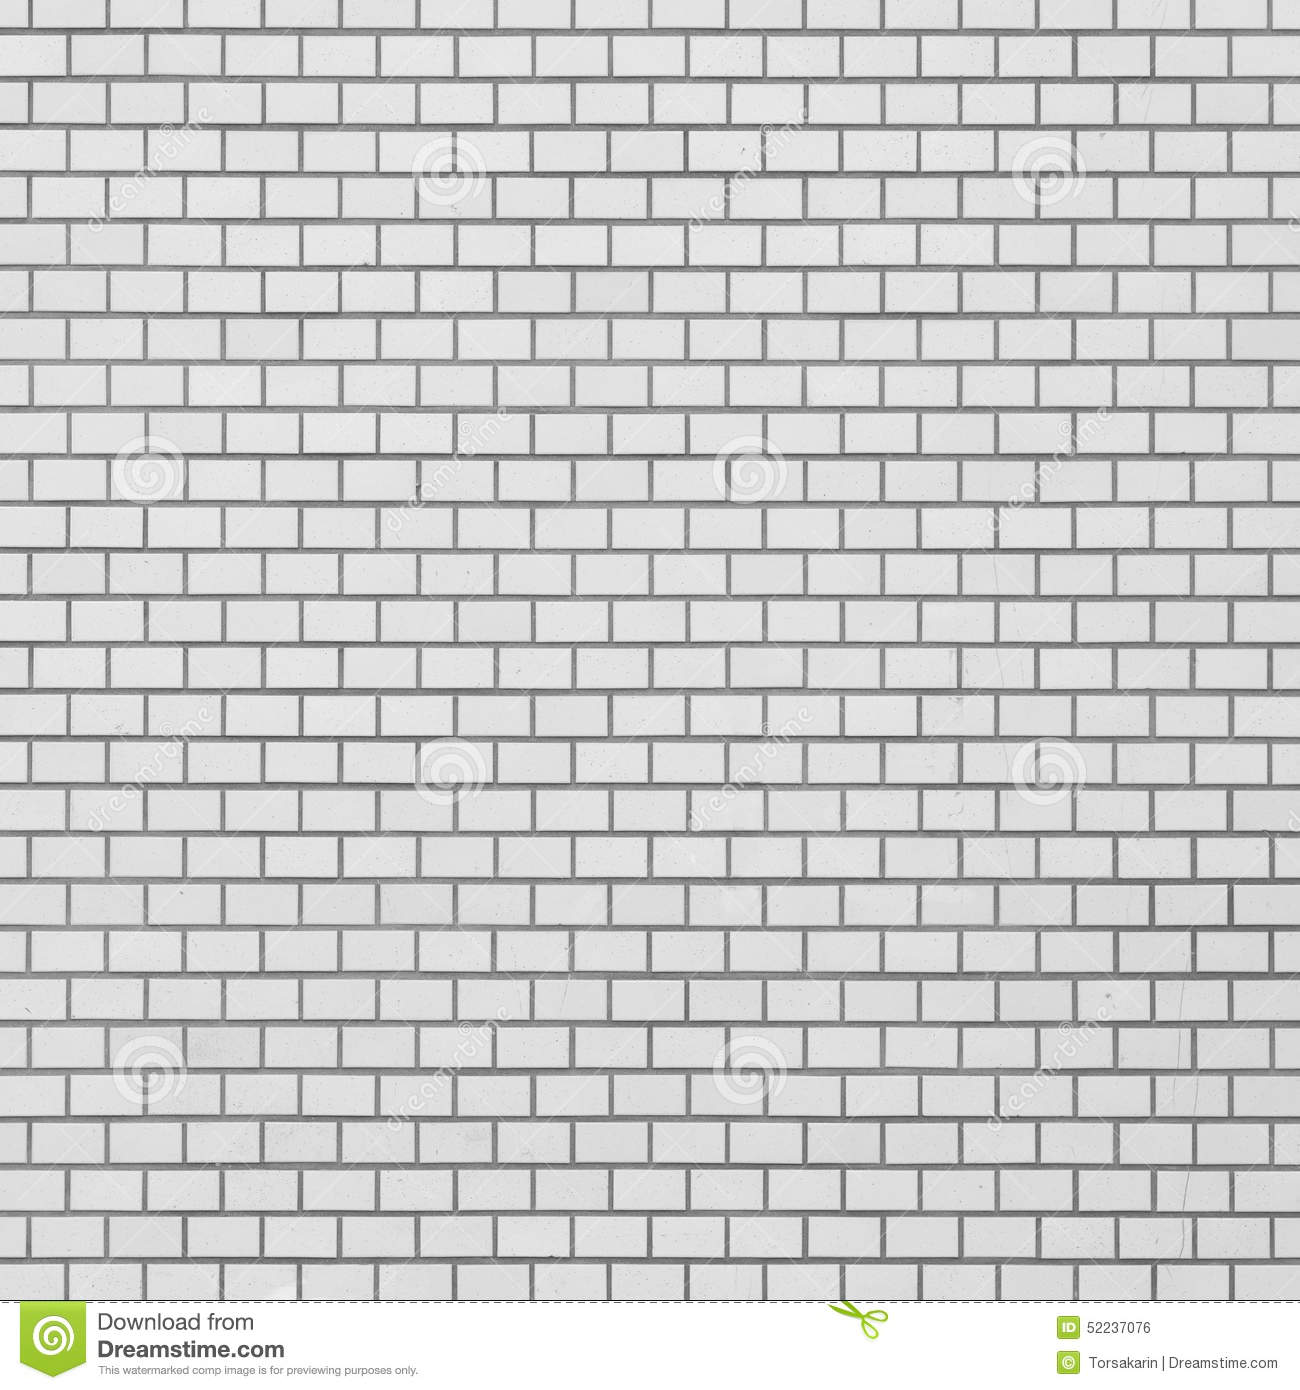 White brick tile wall stock photo. Image of rough ... Broken Brick Wall Photoshop